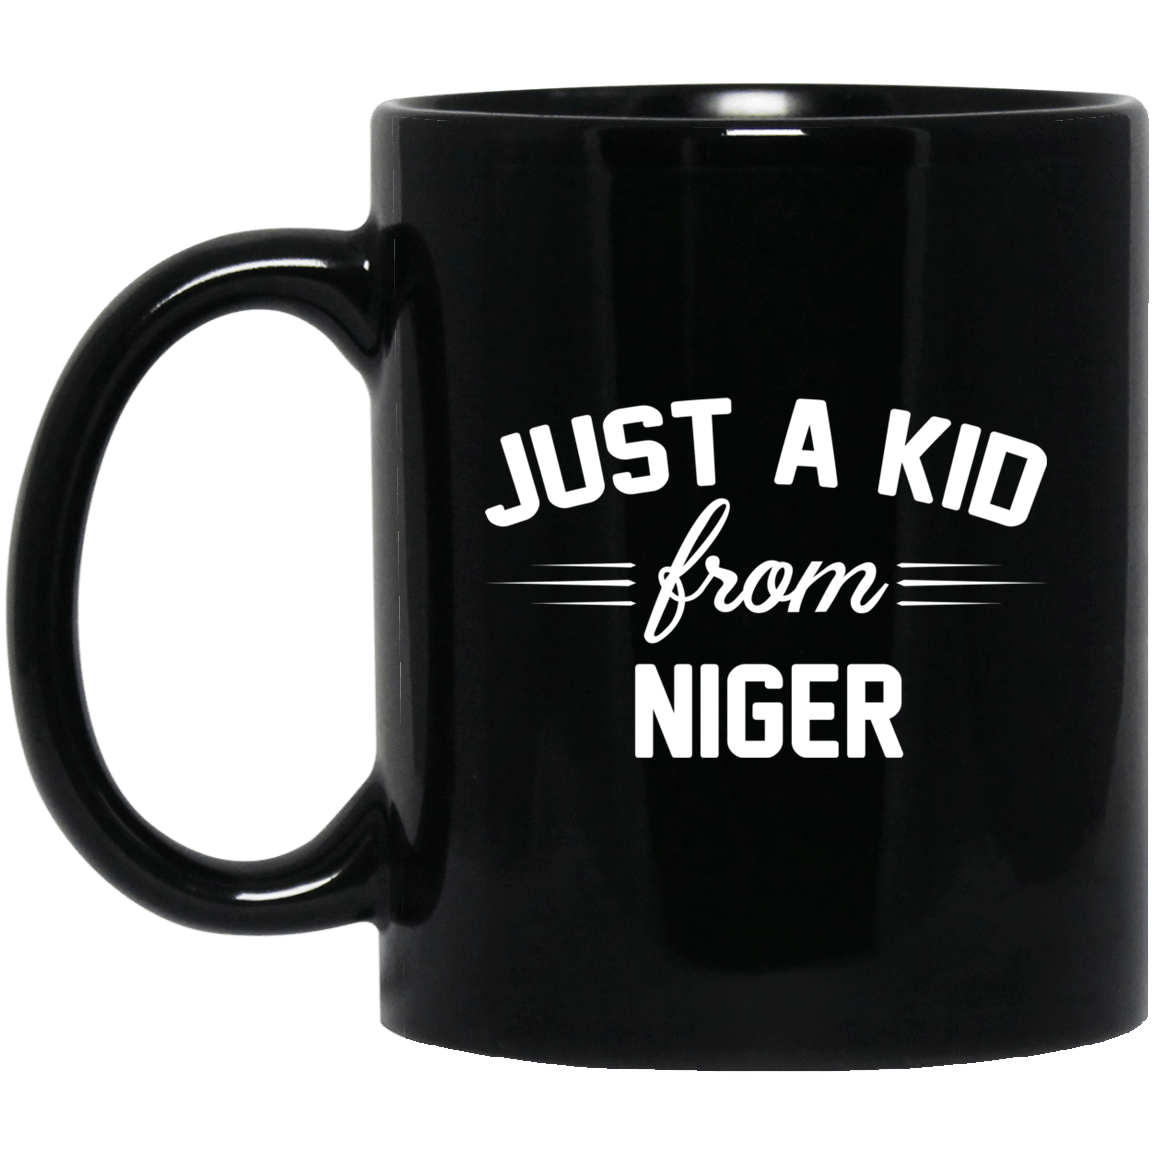 Just A Kid Store | Niger Mug 1065-10181-72111187-49307 - Tee Ript